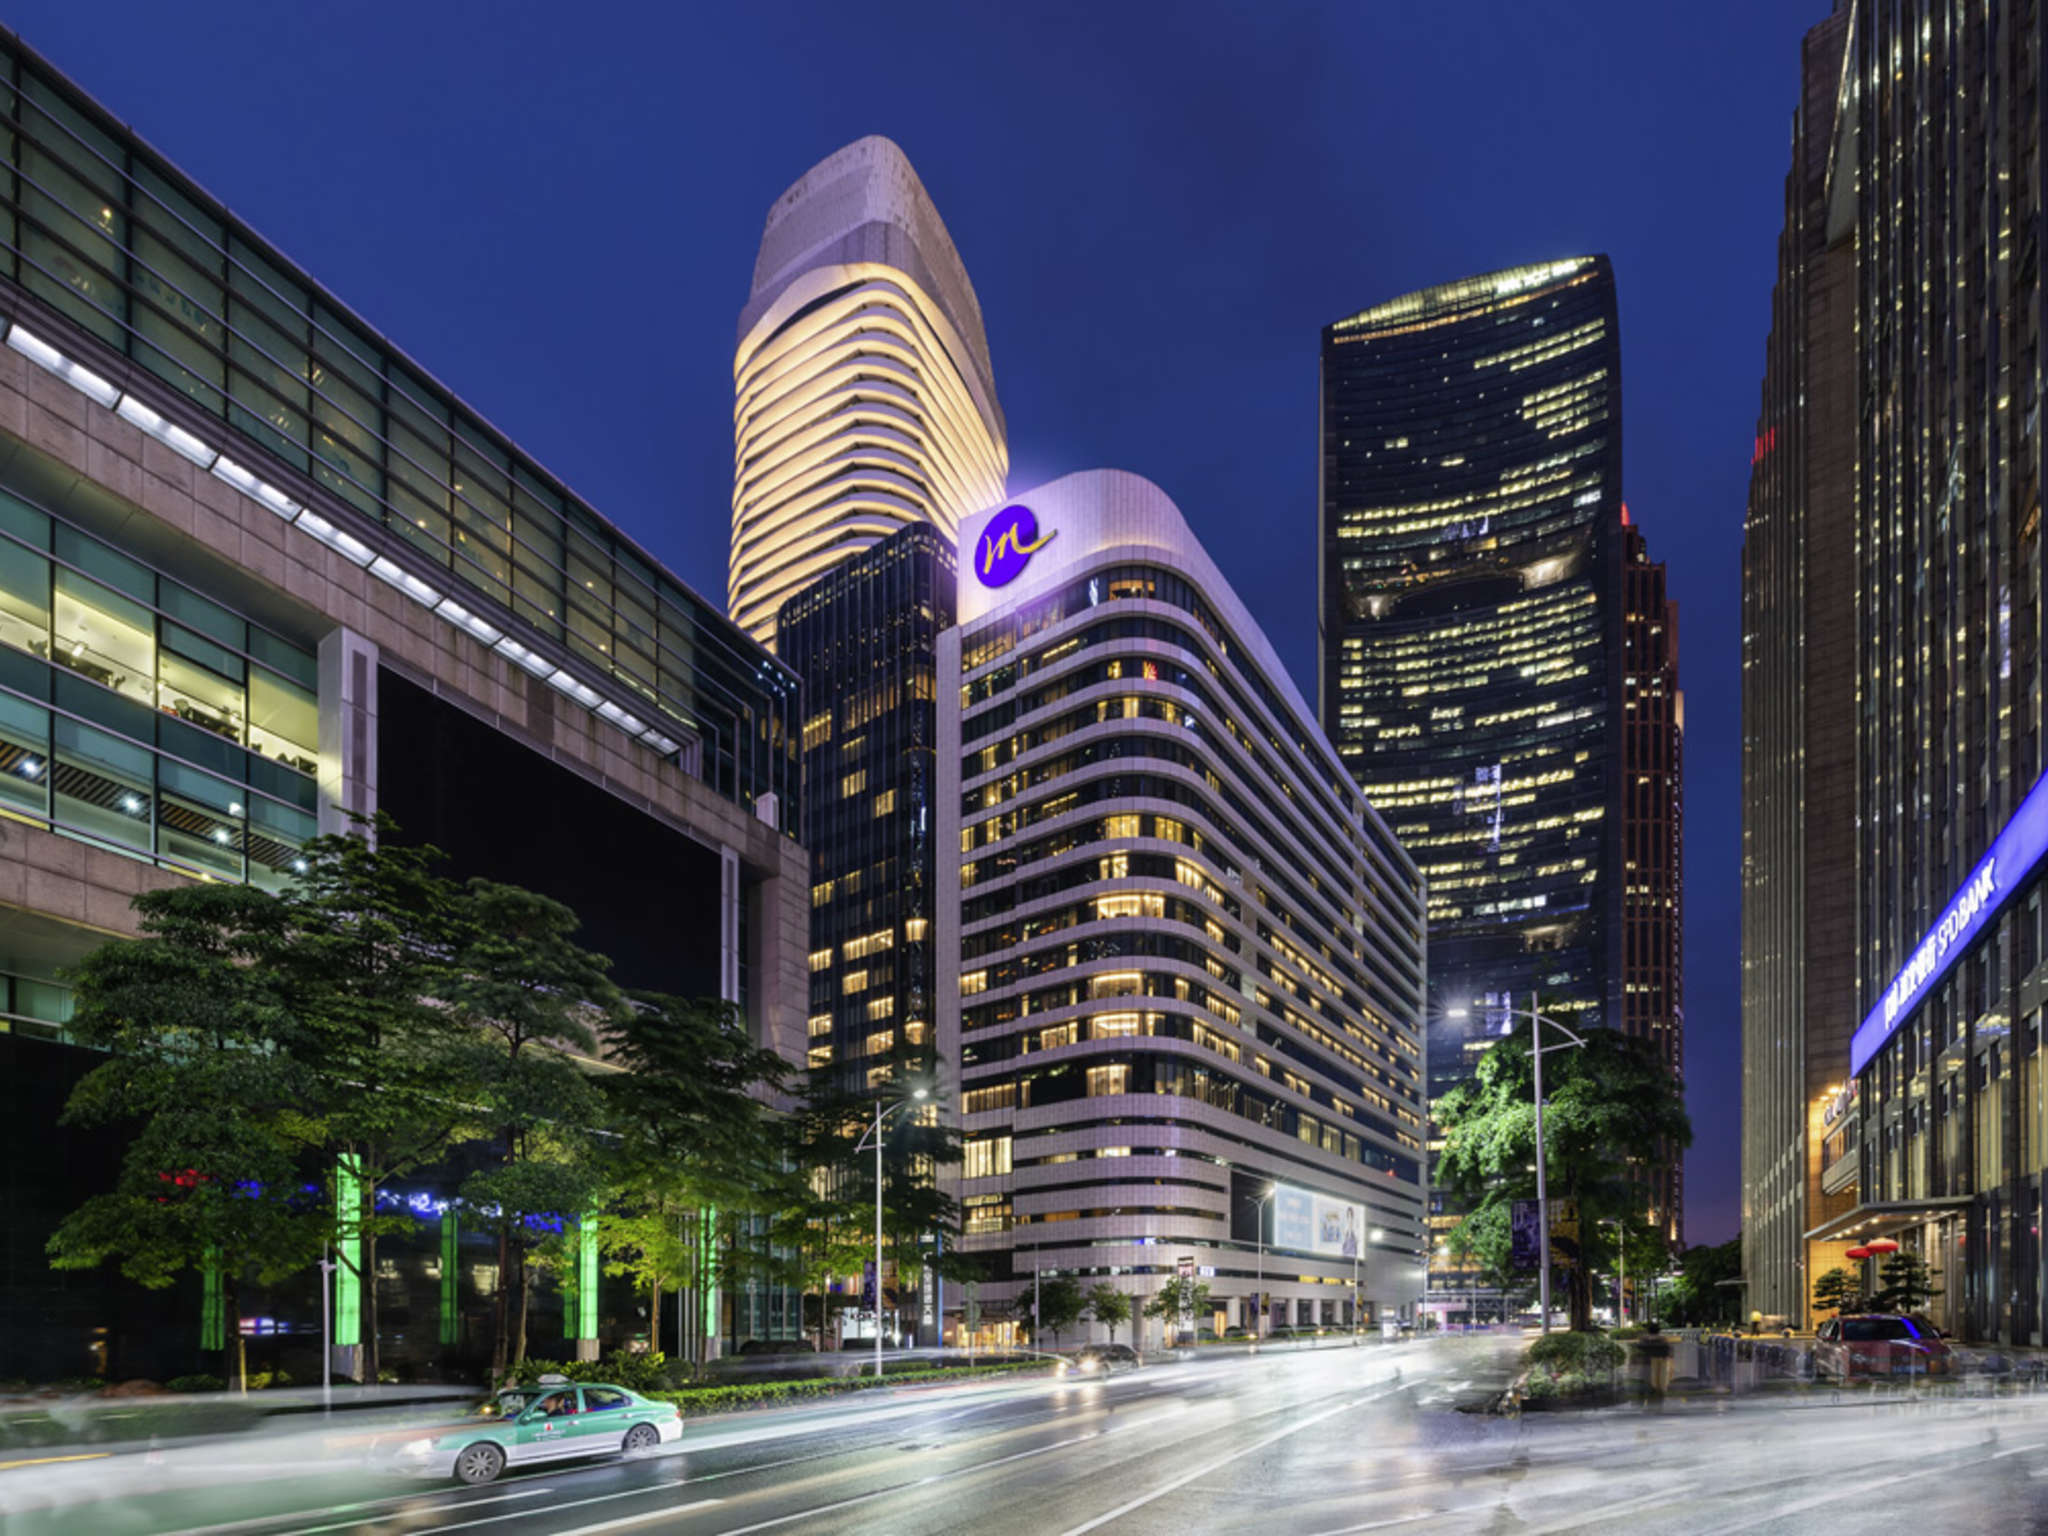 Hotel - Grand Mercure Guangzhou Zhujiang (Opening March 2019)